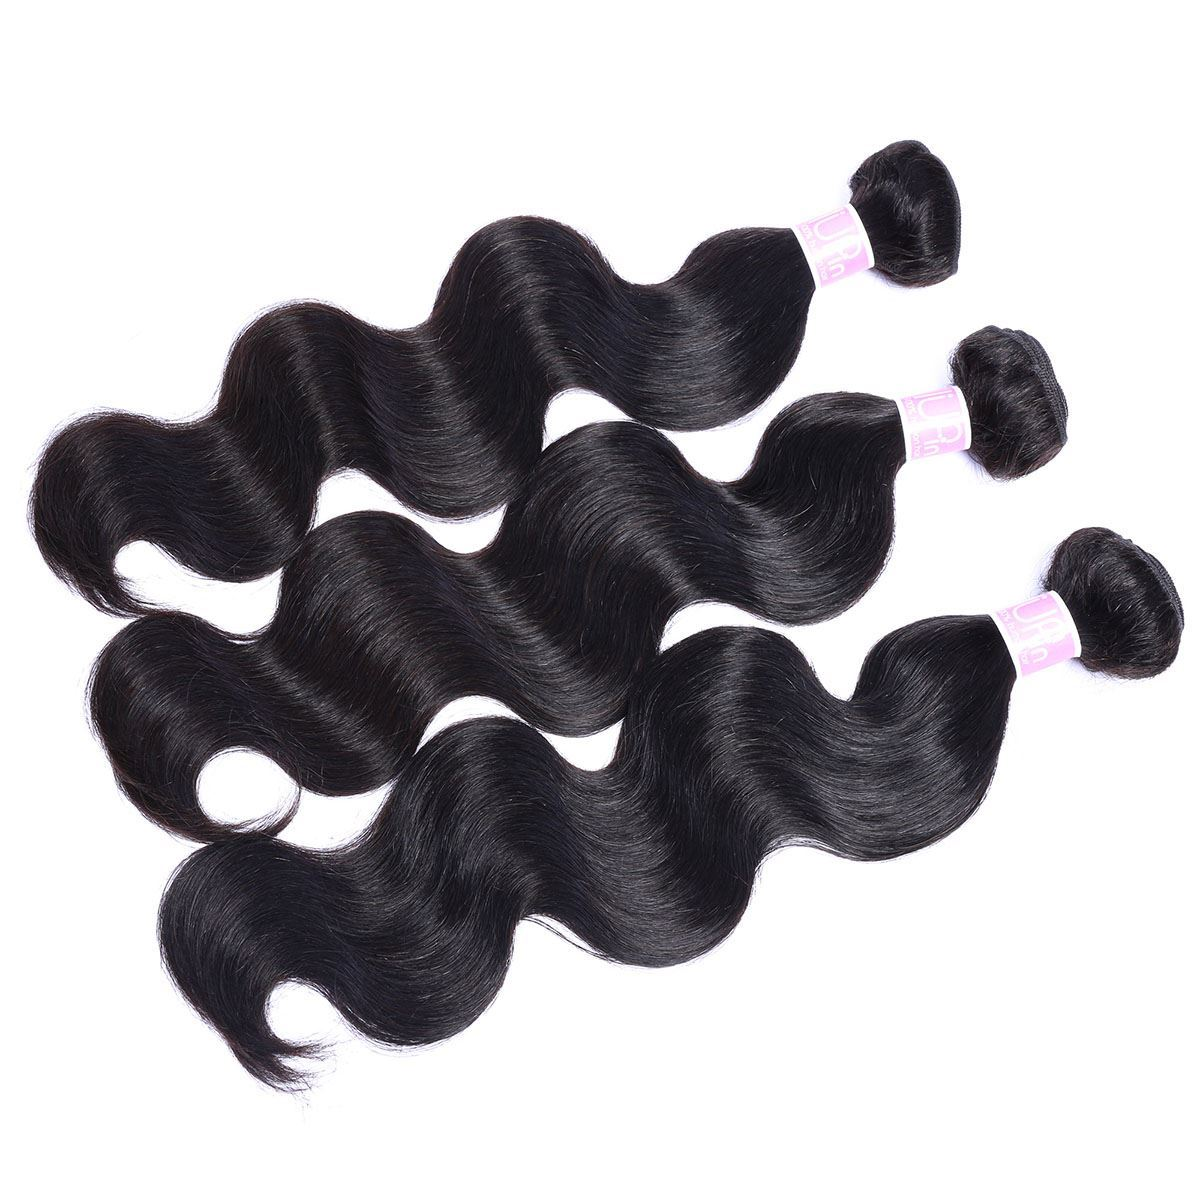 body wave human hair 3 Bundles